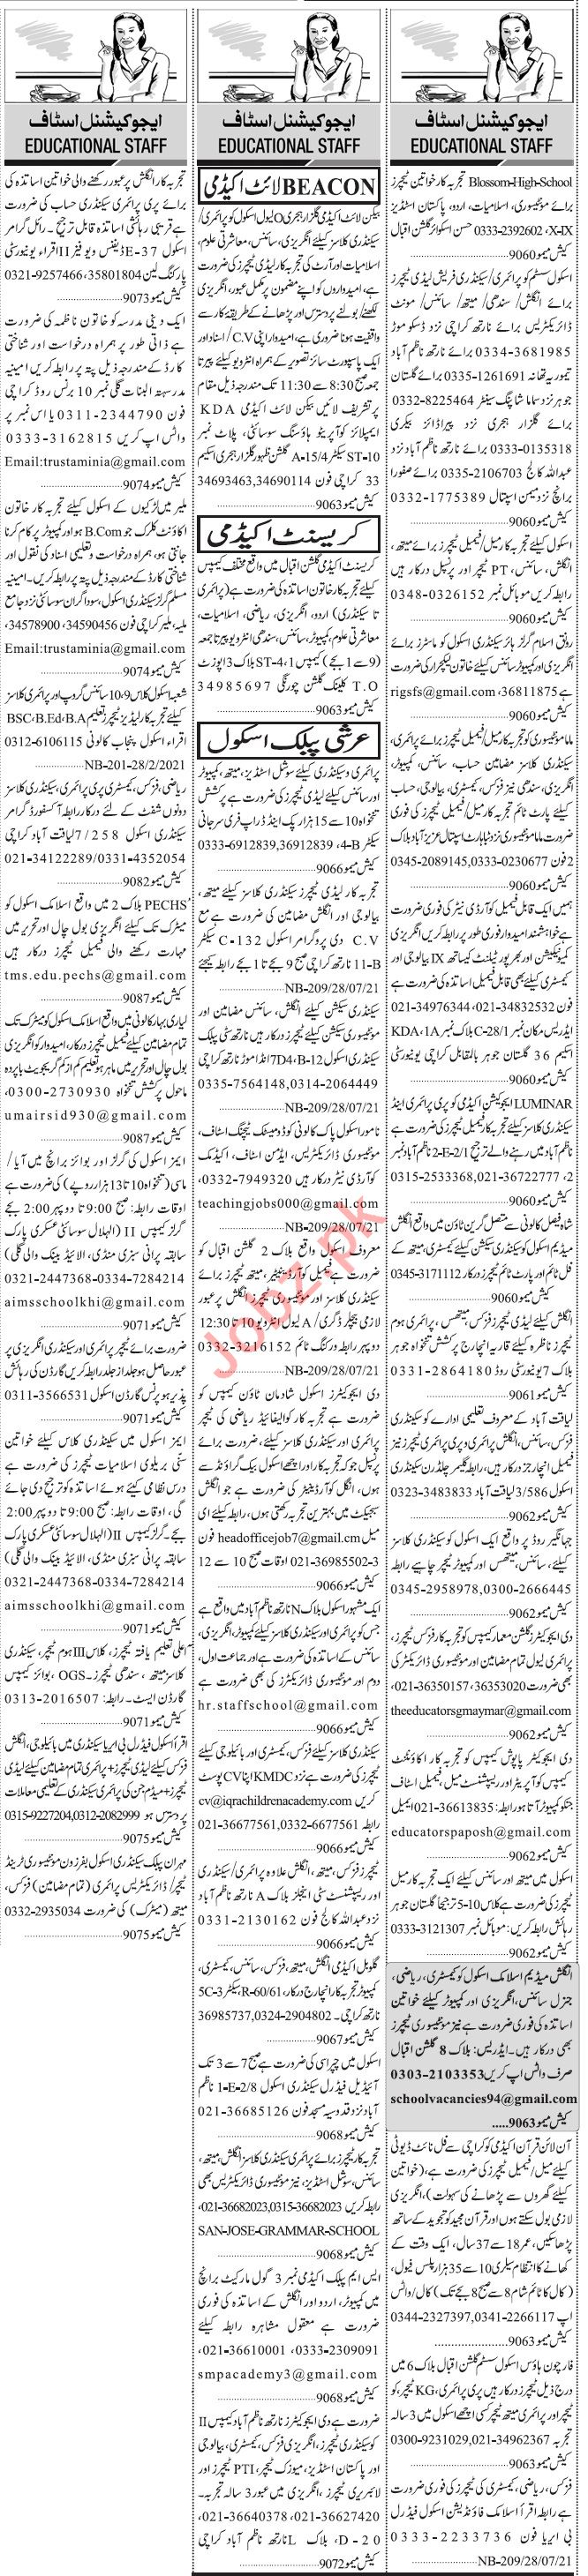 Jang Sunday Classified Ads 28 Feb 2021 for Educational Staff